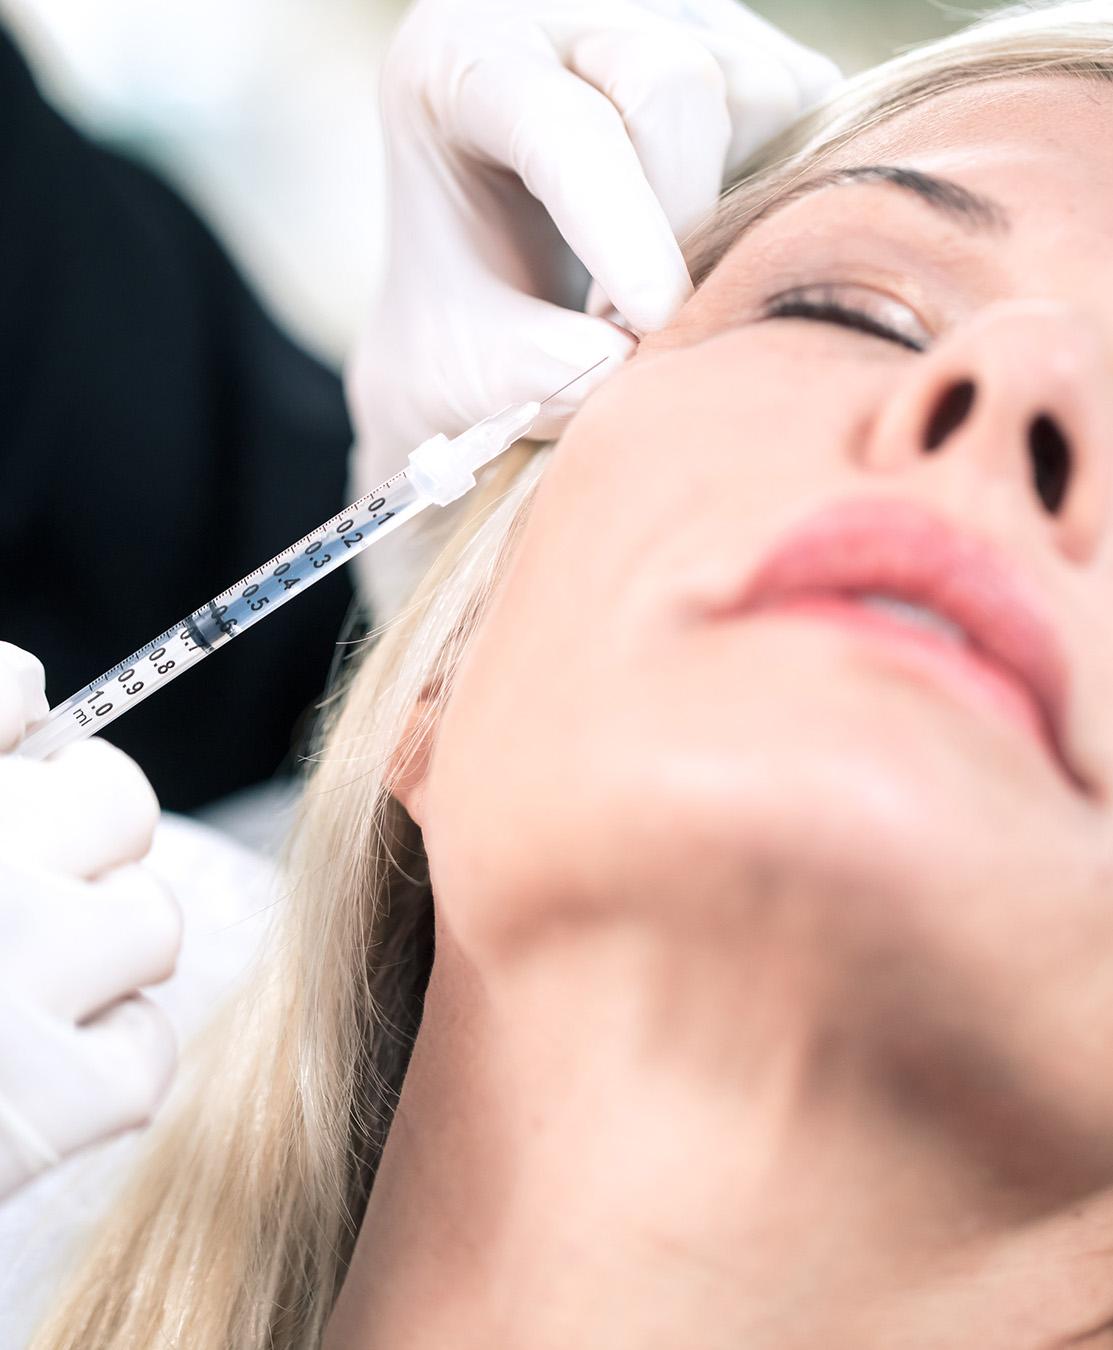 Older woman getting neuromodulators injected in face